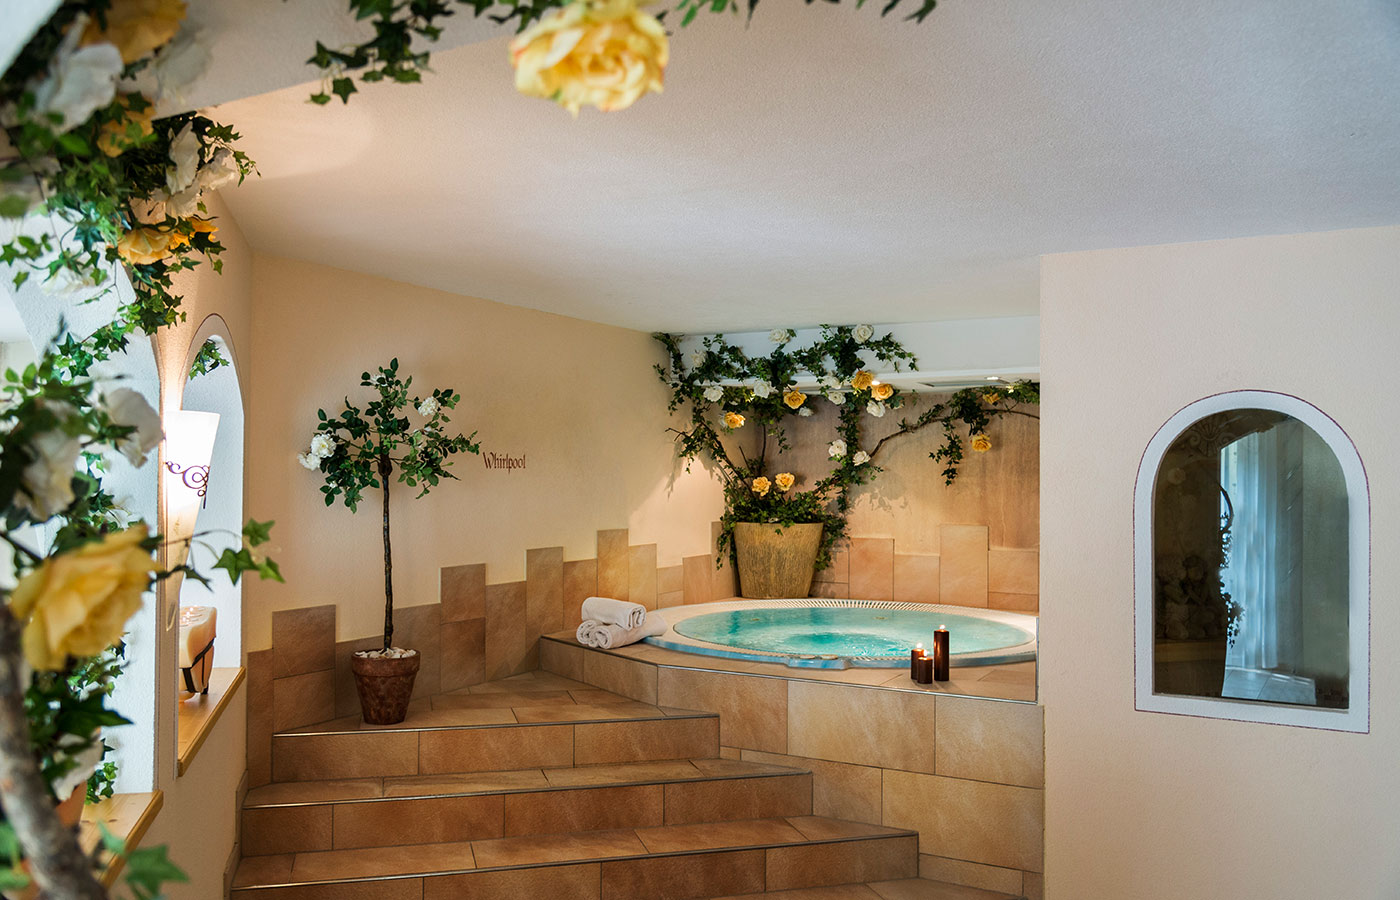 Area Wellness Hotel Waldheim: the round whirlpool